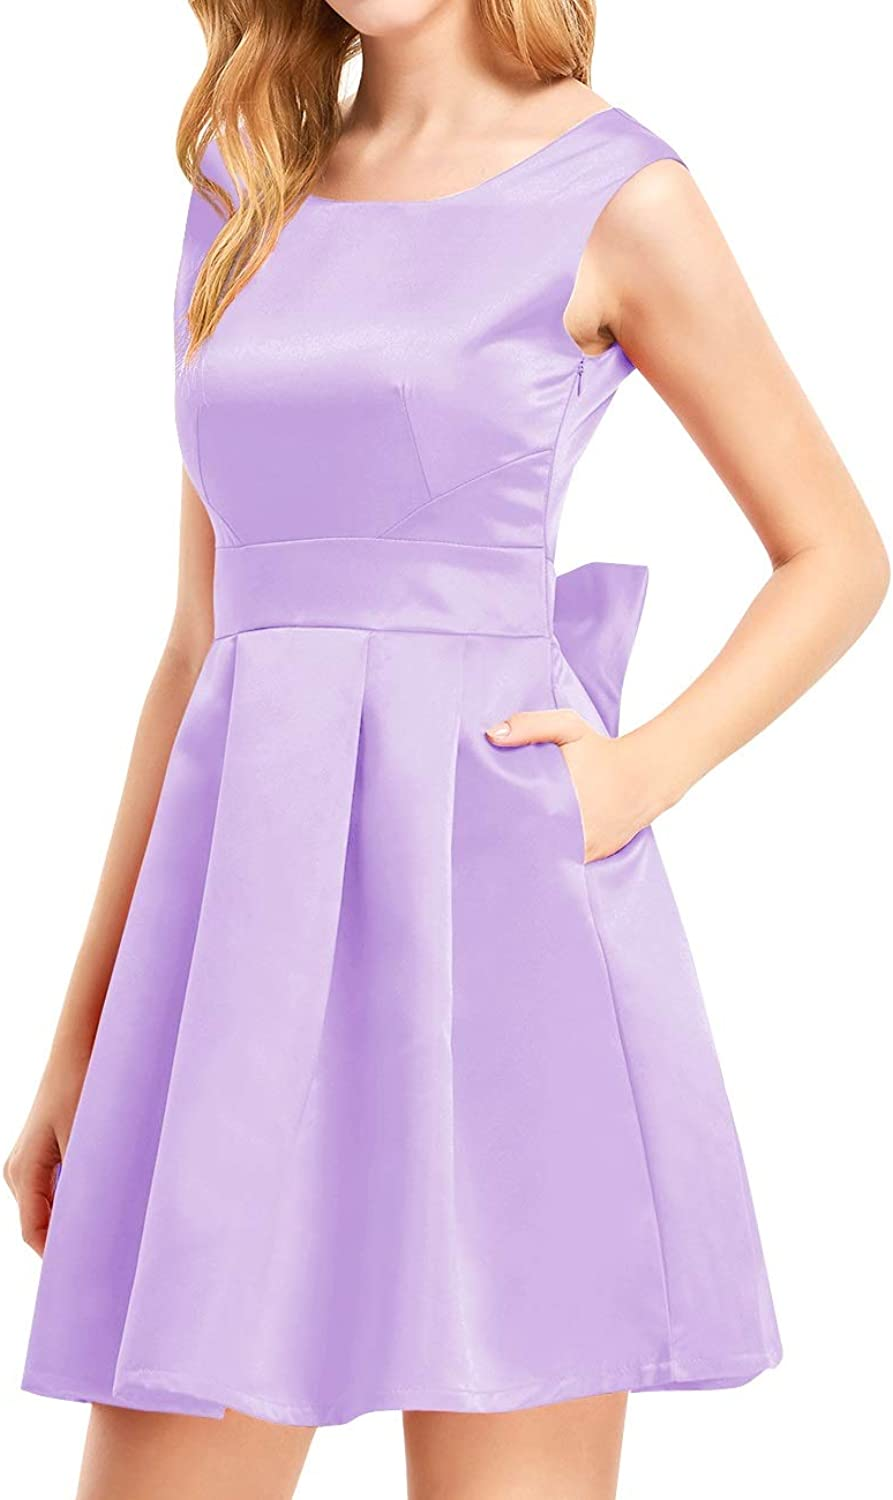 Bess Bridal Women's Backless Pockets Bow Short Prom Homecoming Party Dress